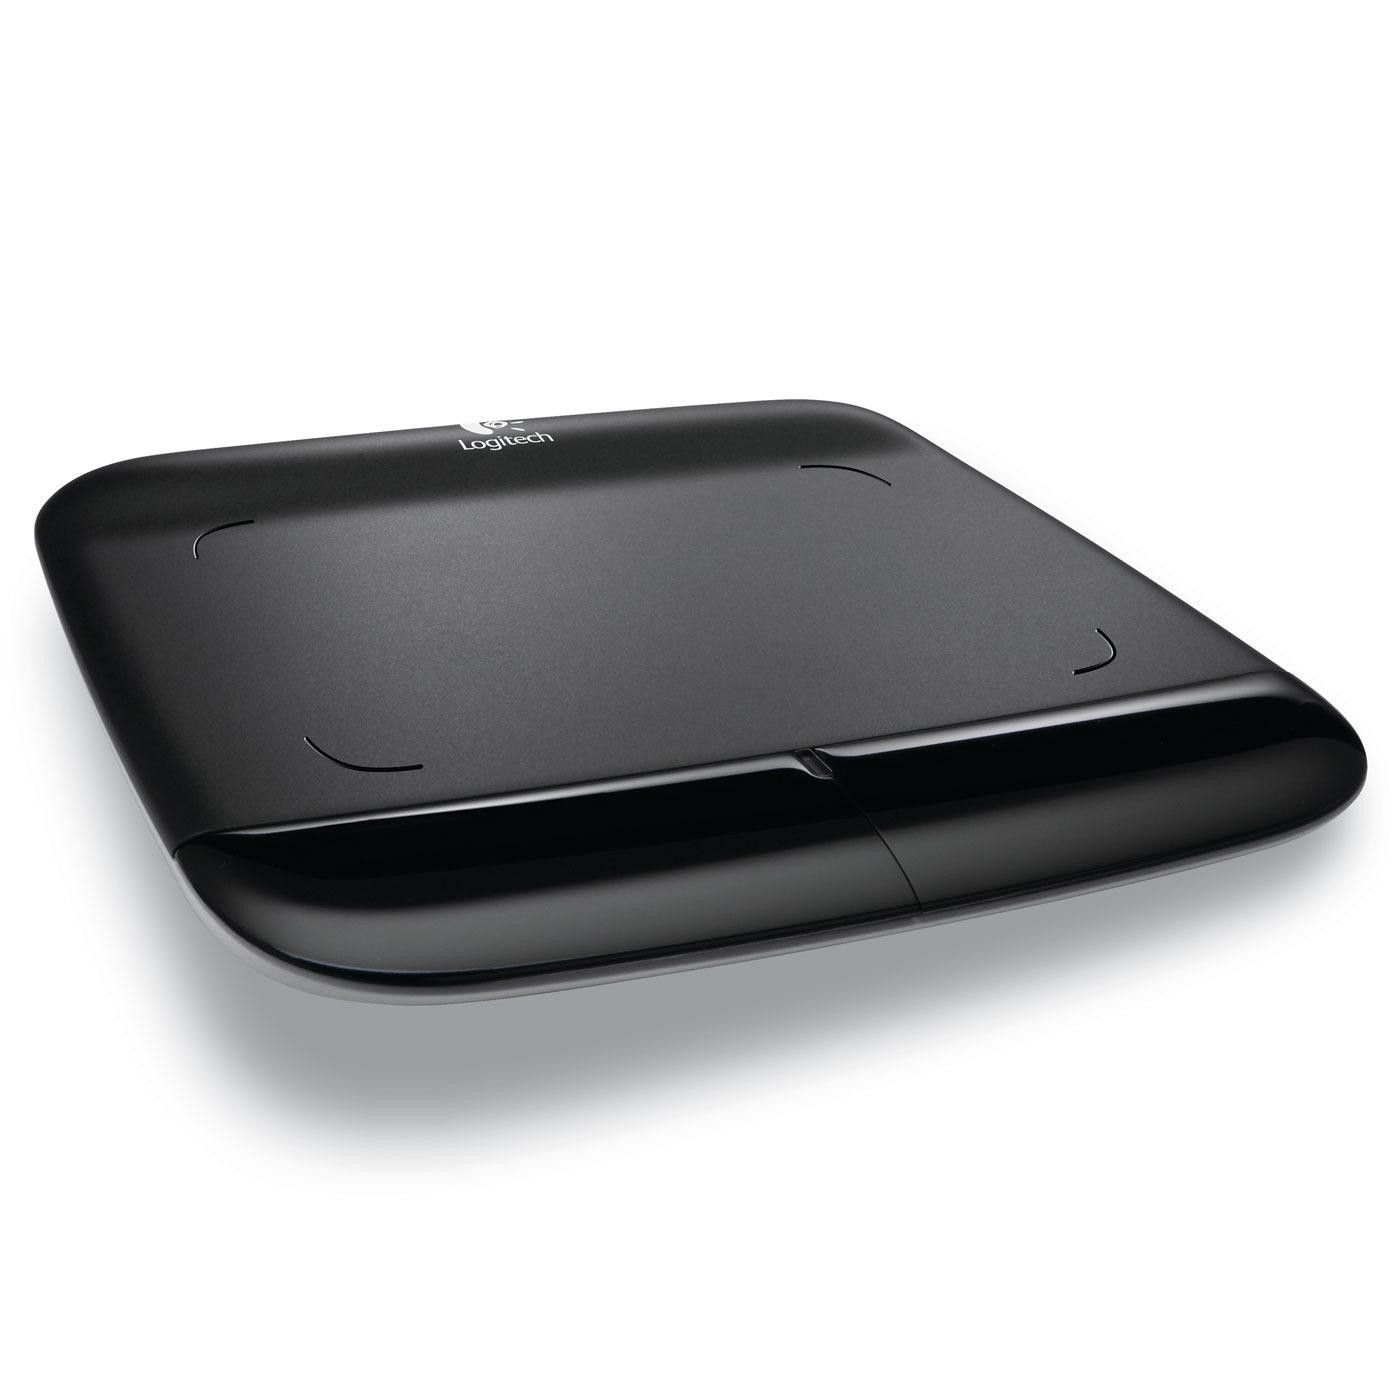 Logitech Wireless Touchpad - Sort